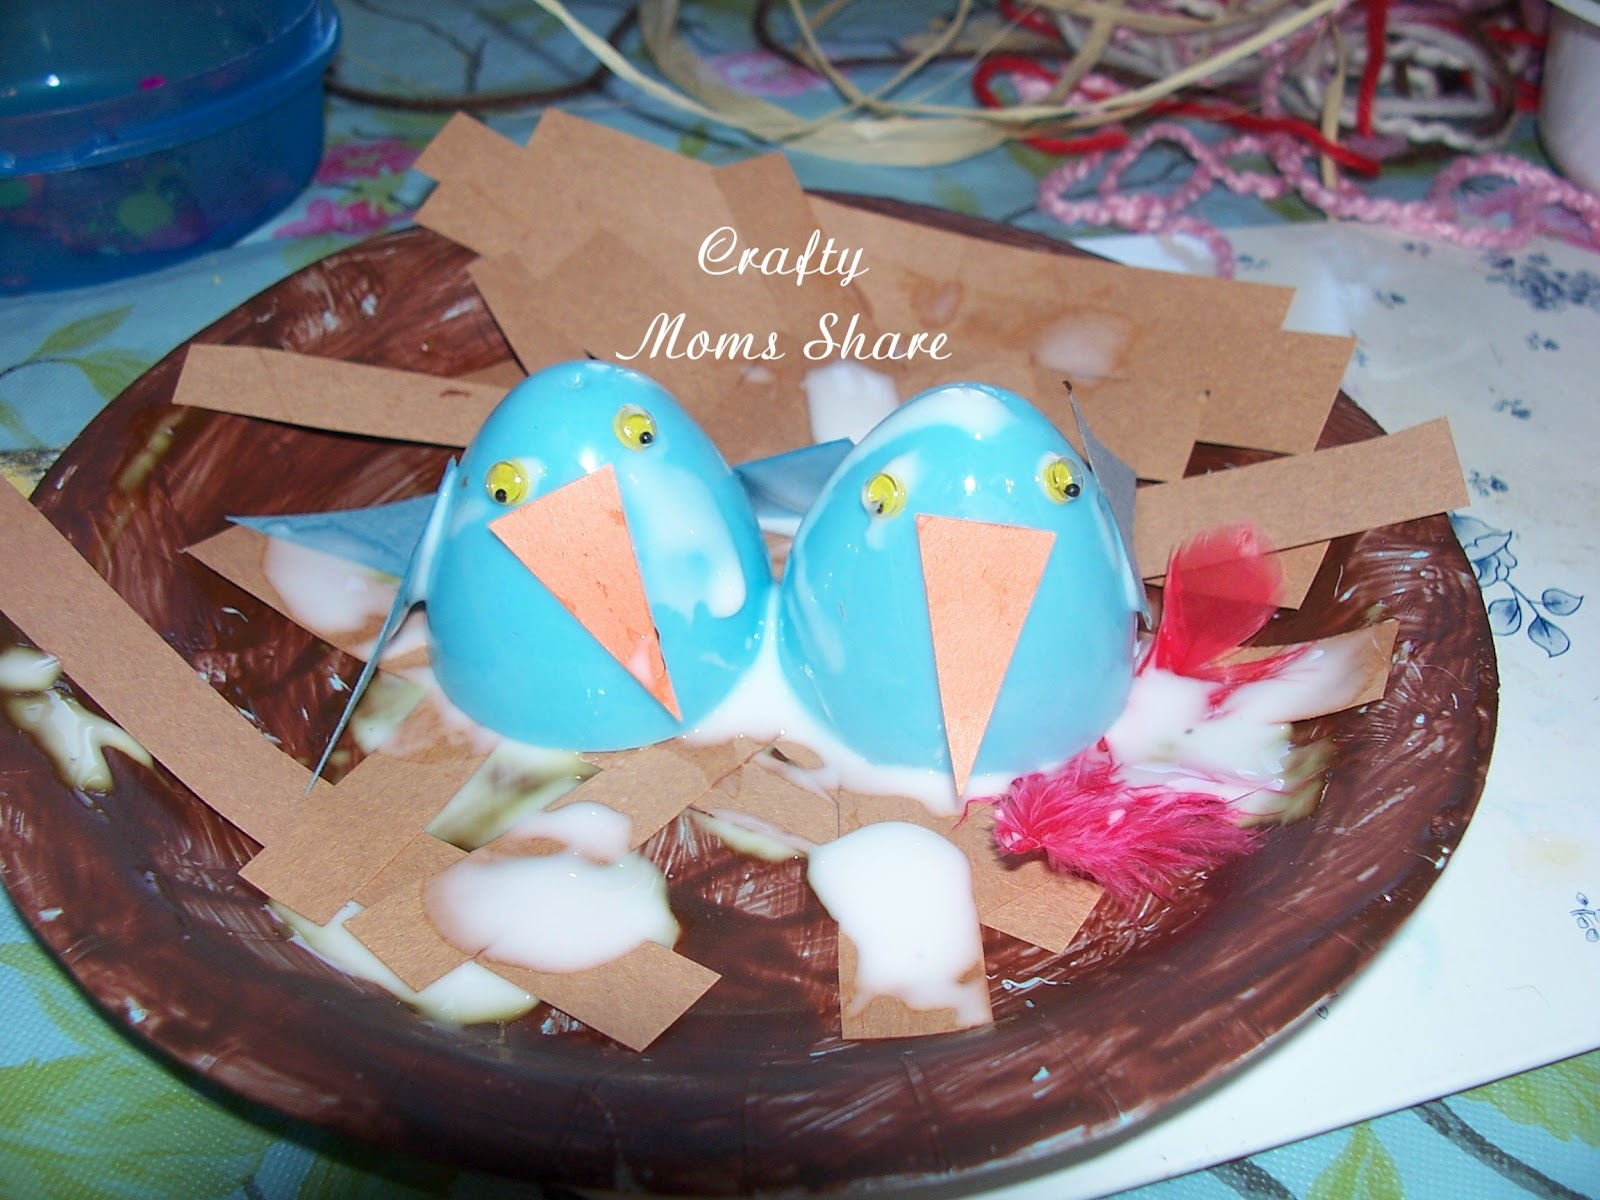 Crafty Moms Share: Building a Bird Nest